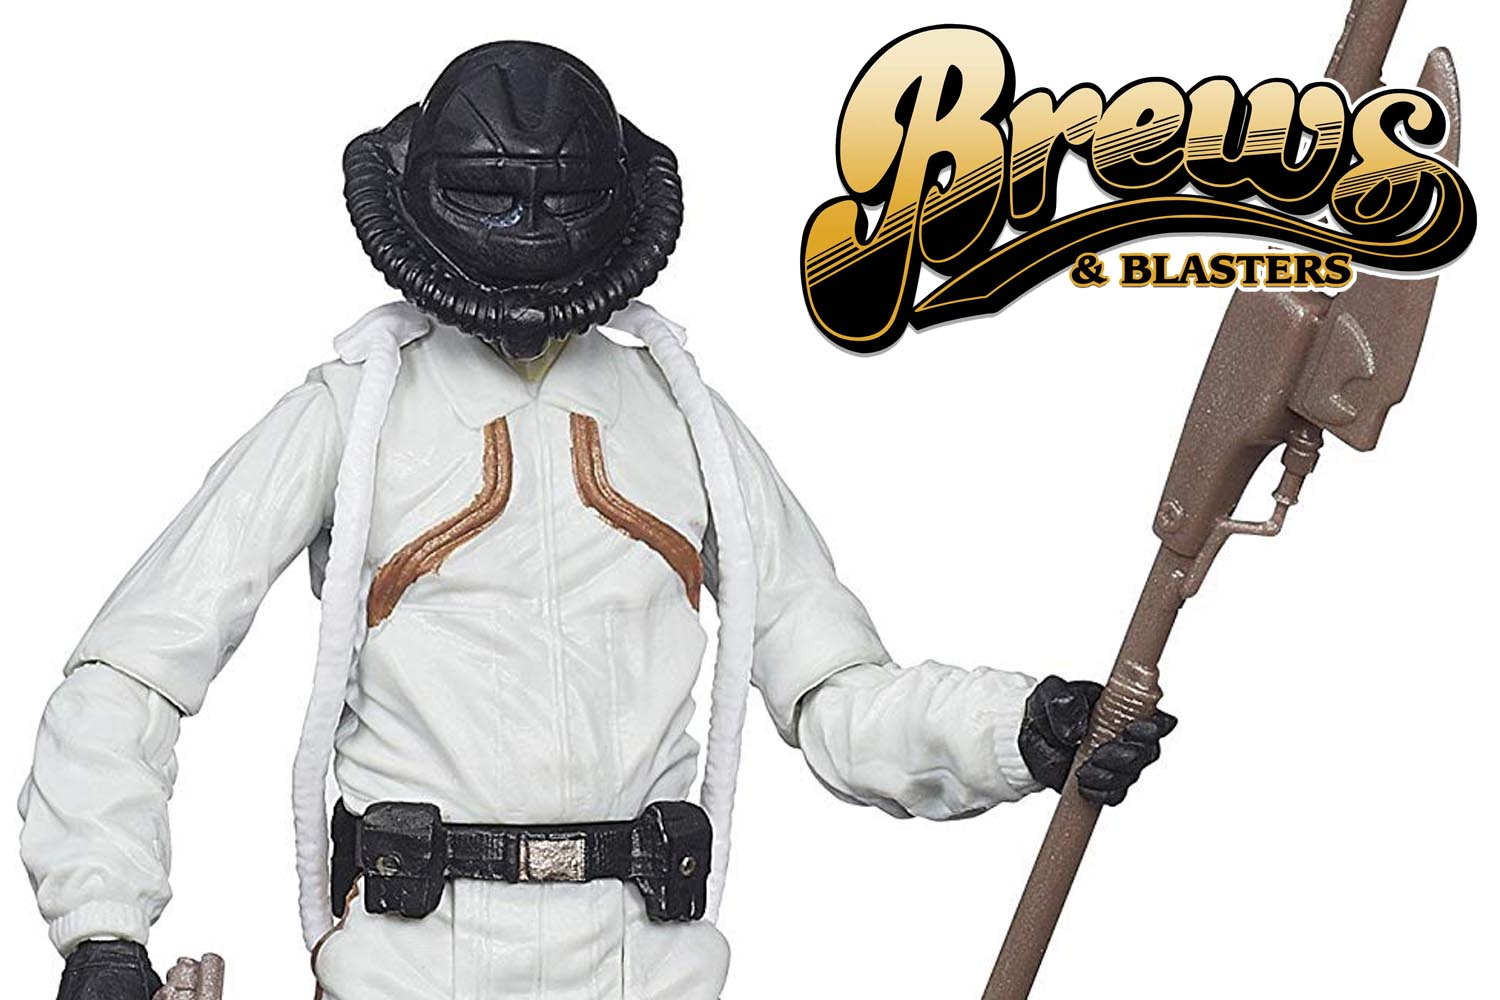 No jokes aside, this episode is all about action figures. No joking around at all, we swear. Oh yeah, and a contest! On this episode of Brews and Blasters, we aren't joking around at all: we're talking action figures for the entirety of this episode. We're definitely not singing the A-Team theme or anything like that. You might want to listen to the end, too, 'cause we got a contest going on! The Star Wars Party starts NOW! It's time for Brews and Blasters. Show Notes • Can you say…action figures? • Chris has some carded Kenners in acrylic. • Hasbro SDCC Exclusives o 40th Anniversary Boba Fett (Kenner Style) o Luke Skywalker Jedi Destiny o Sith Trooper o Retro Collection Darth Vader Prototype figure • Remembering importing SDCC exclusives from years past. • The Vintage Collection Jabba's Skiff Guard Set o Vidain (Skiff Pilot) o Vizam o Brock Starsher (Jabba's Skiff Guard) • The Vintage Collection Gammorean Guard • The Vintage Collection Death Star Gunner • The Vintage Collection R2-D2 (ANH) • The Vintage Collection Luke Skywalker (Crait) • Black Series Obi Wan Kenobi (TPM) • Black Series Ezra Bridger • Black Series Archive Darth Maul • Black Series Archive Scout Trooper • CONTEST! Links • Join Our Community: Discord Server • Subscribe: Apple Podcasts | Spotify | Stitcher | Google Play | Soundcloud | iHeart Radio | TuneIn | RSS • RetroZap Podcast Network: Apple Podcasts | Google Play | RSS • Social: BrewsAndBlasters.ninja | Facebook | Facebook Group | Twitter | Instagram • Email: brewsandblasters@retrozap.com • Voicemail: (978) 219-6688 • T-Shirts: TeePublic Store Support Brews and Blasters • If you like the show, please leave us an iTunes review. It helps, honestly, because more people will find the show. And if you take the time, we'll really, really appreciate it. Plus, you'll win an Oppo Award! Support These Things, Too • Go to JediNews and Fantha Tracks for ALL your Star Wars information! And, for the best Star Wars podcast reviews out there, head over to Roqoo Depot.